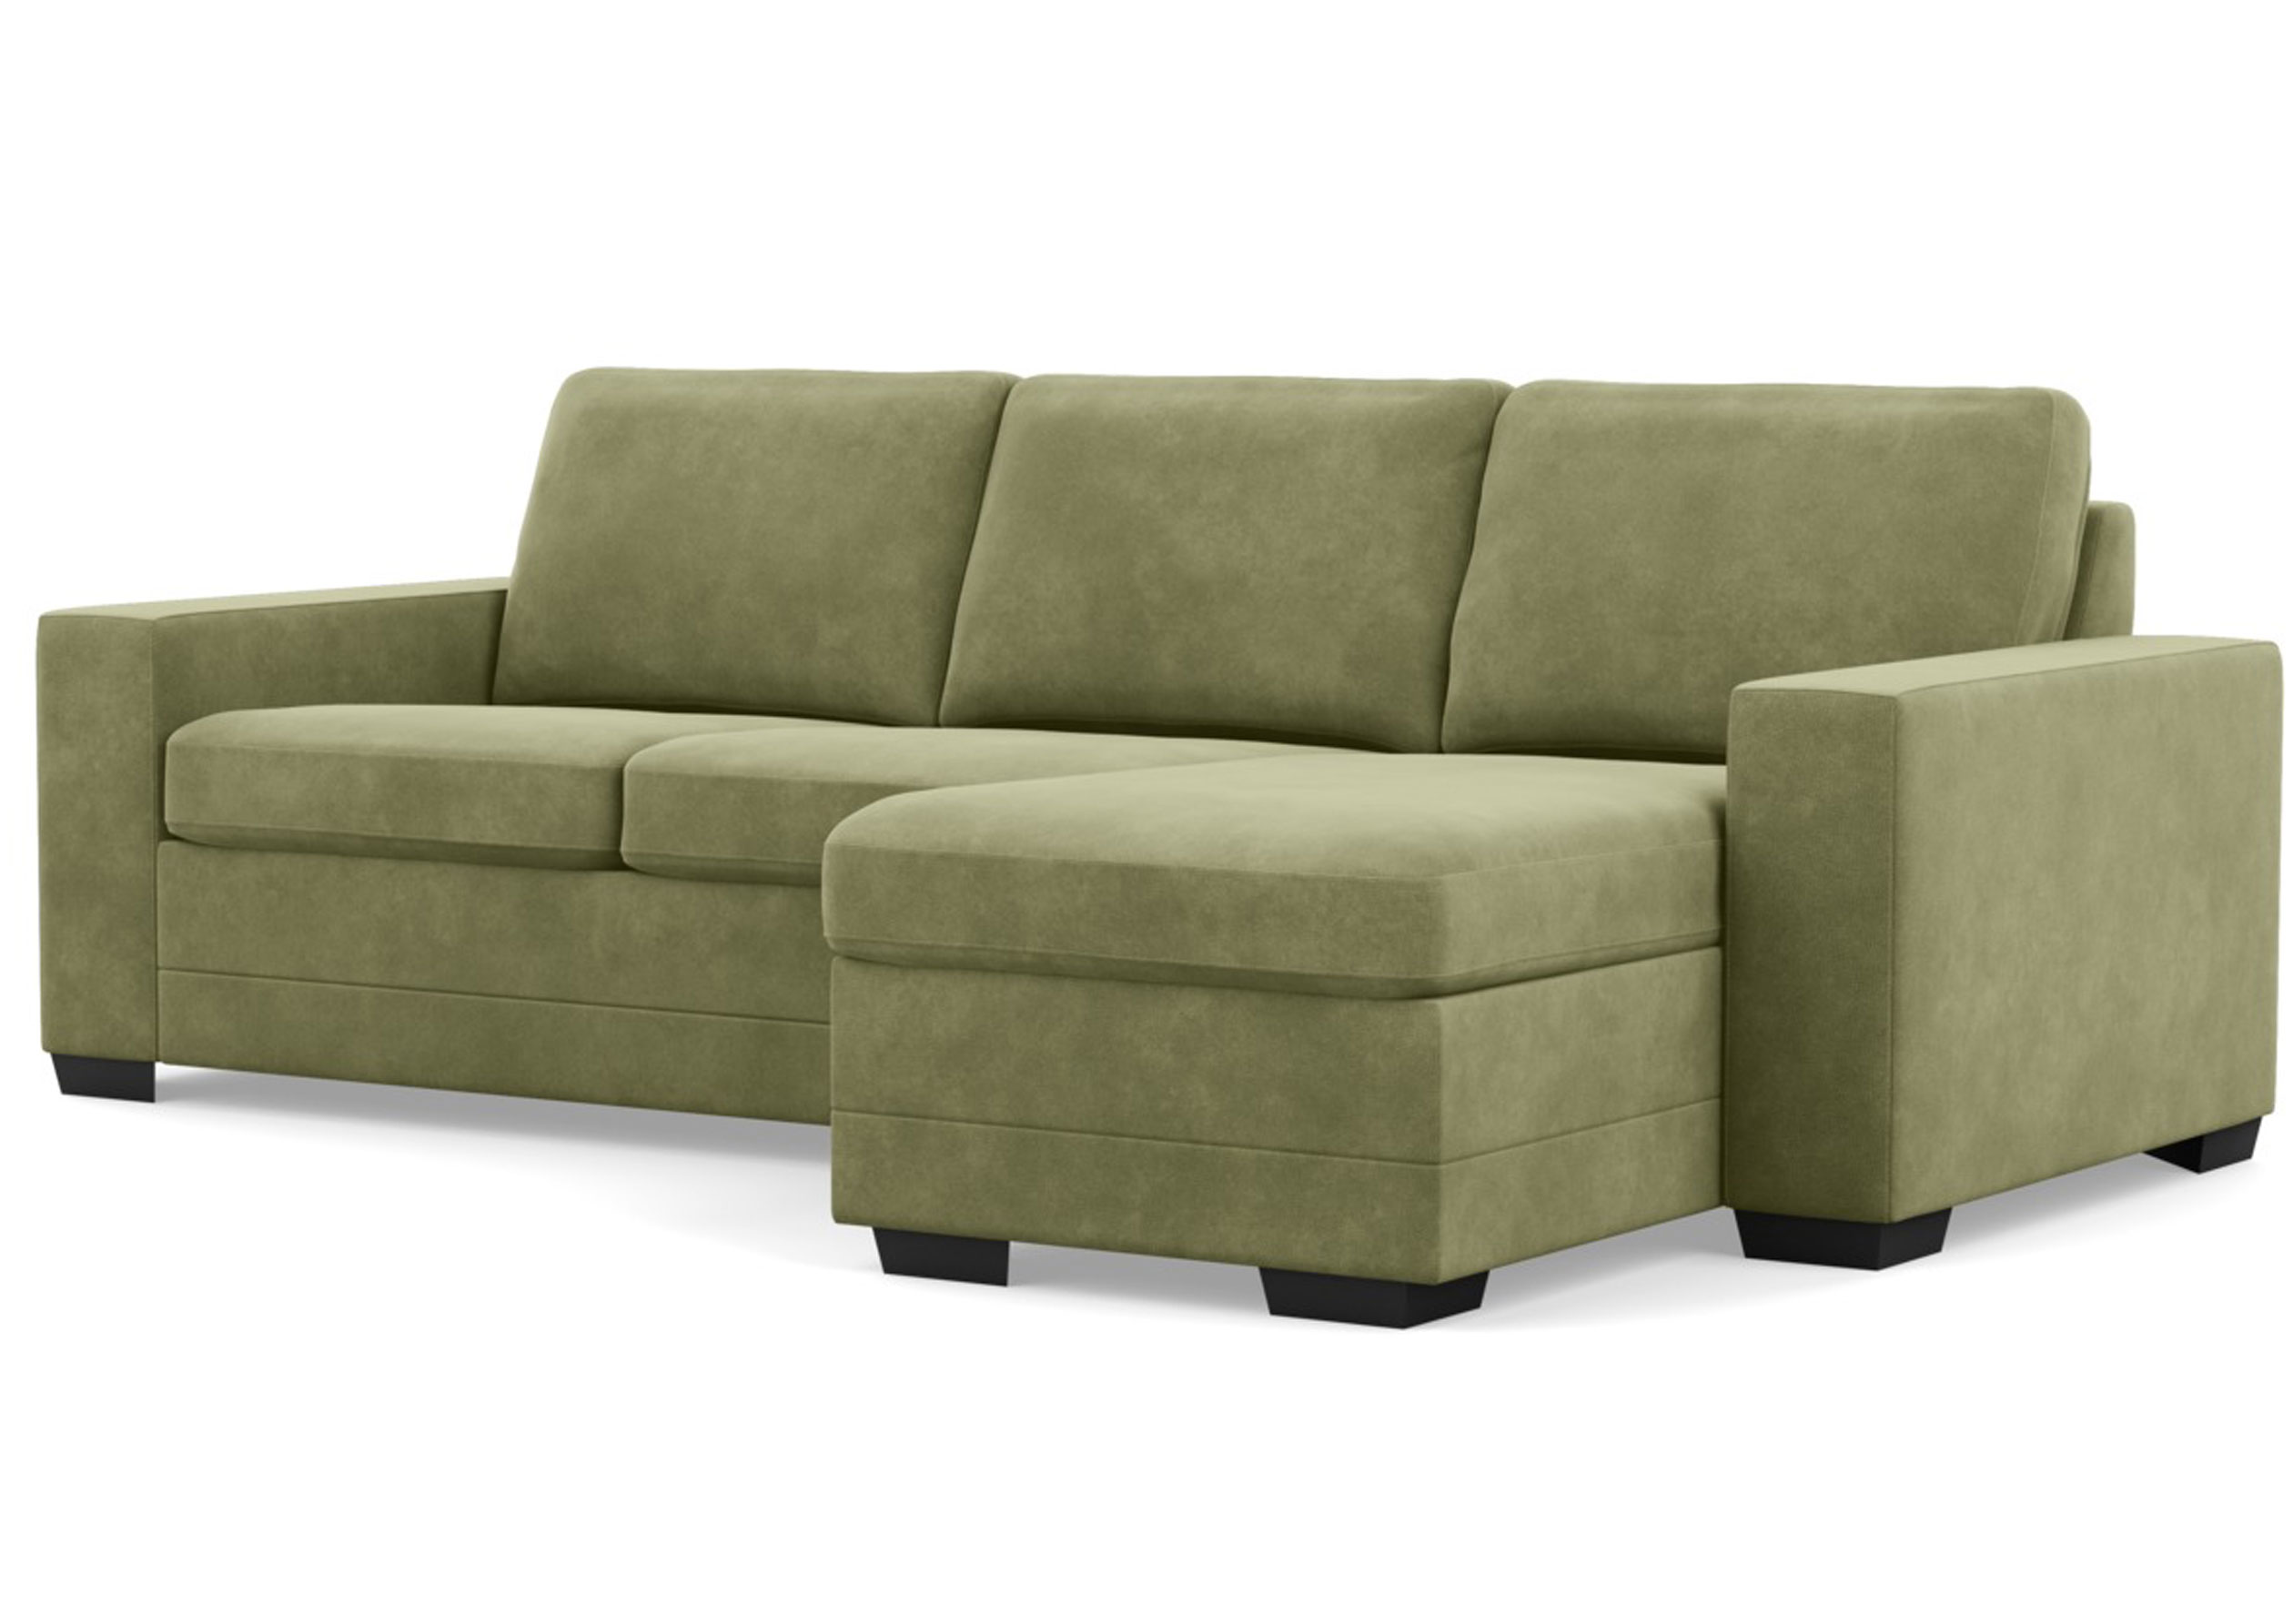 Bello Low Leg Chaise Sofa Sectional Chaise Sofas And